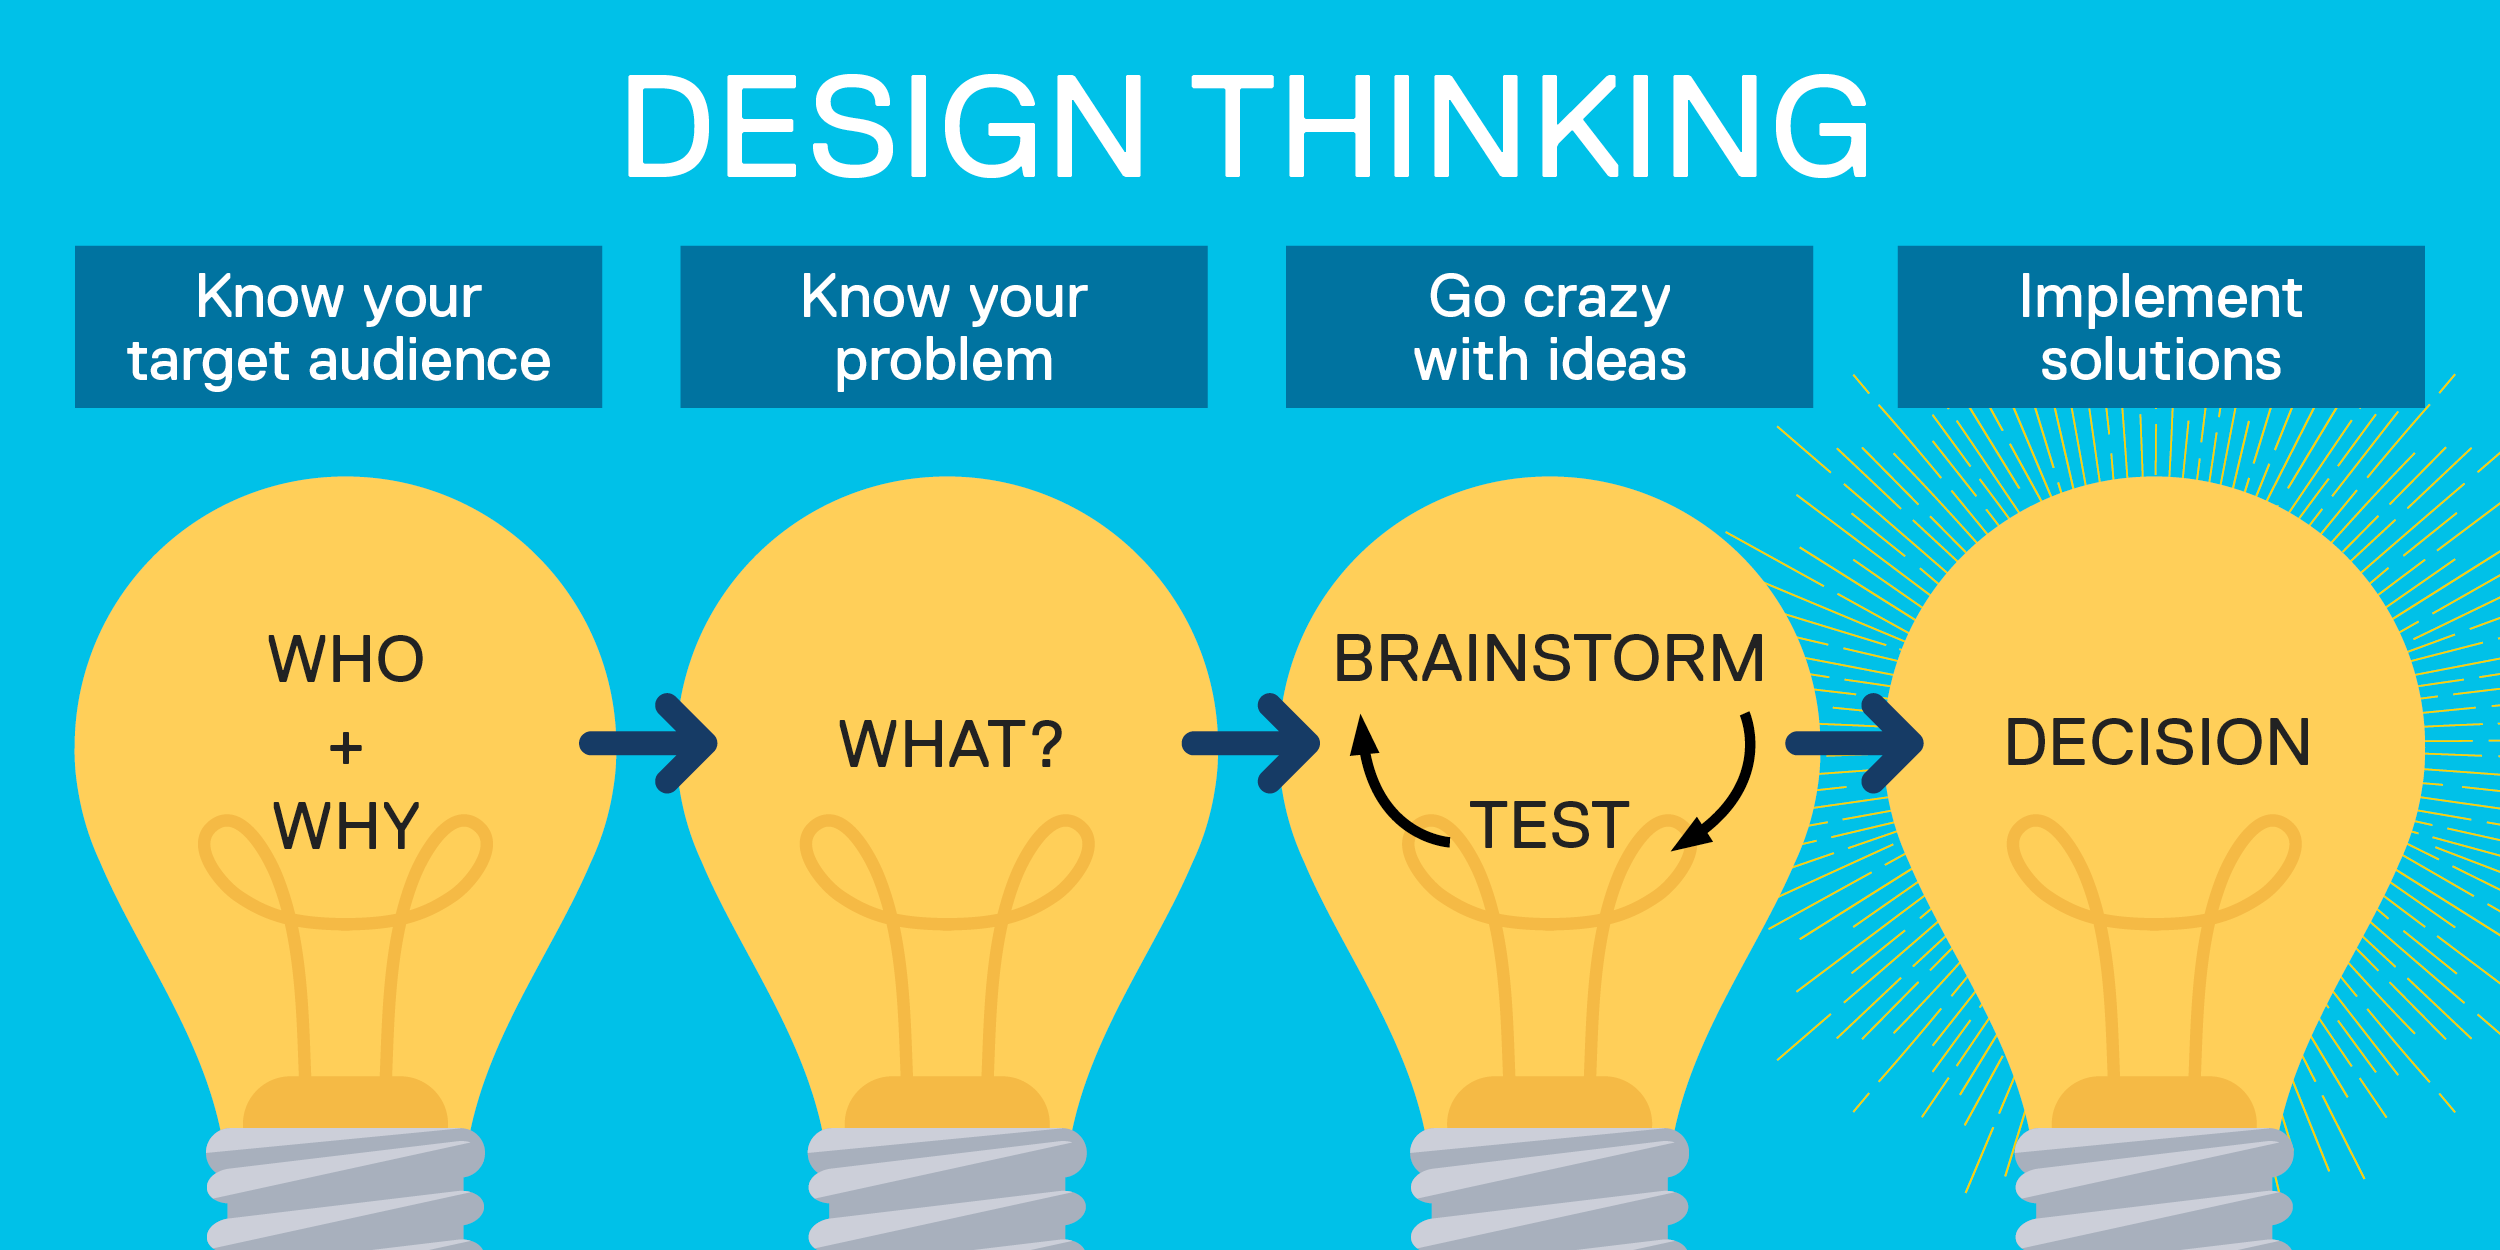 Design thinking: Know your target audience (who + why); know your problem (what); Go crazy with ideas (brainstorm and test); implement solutions (decision)